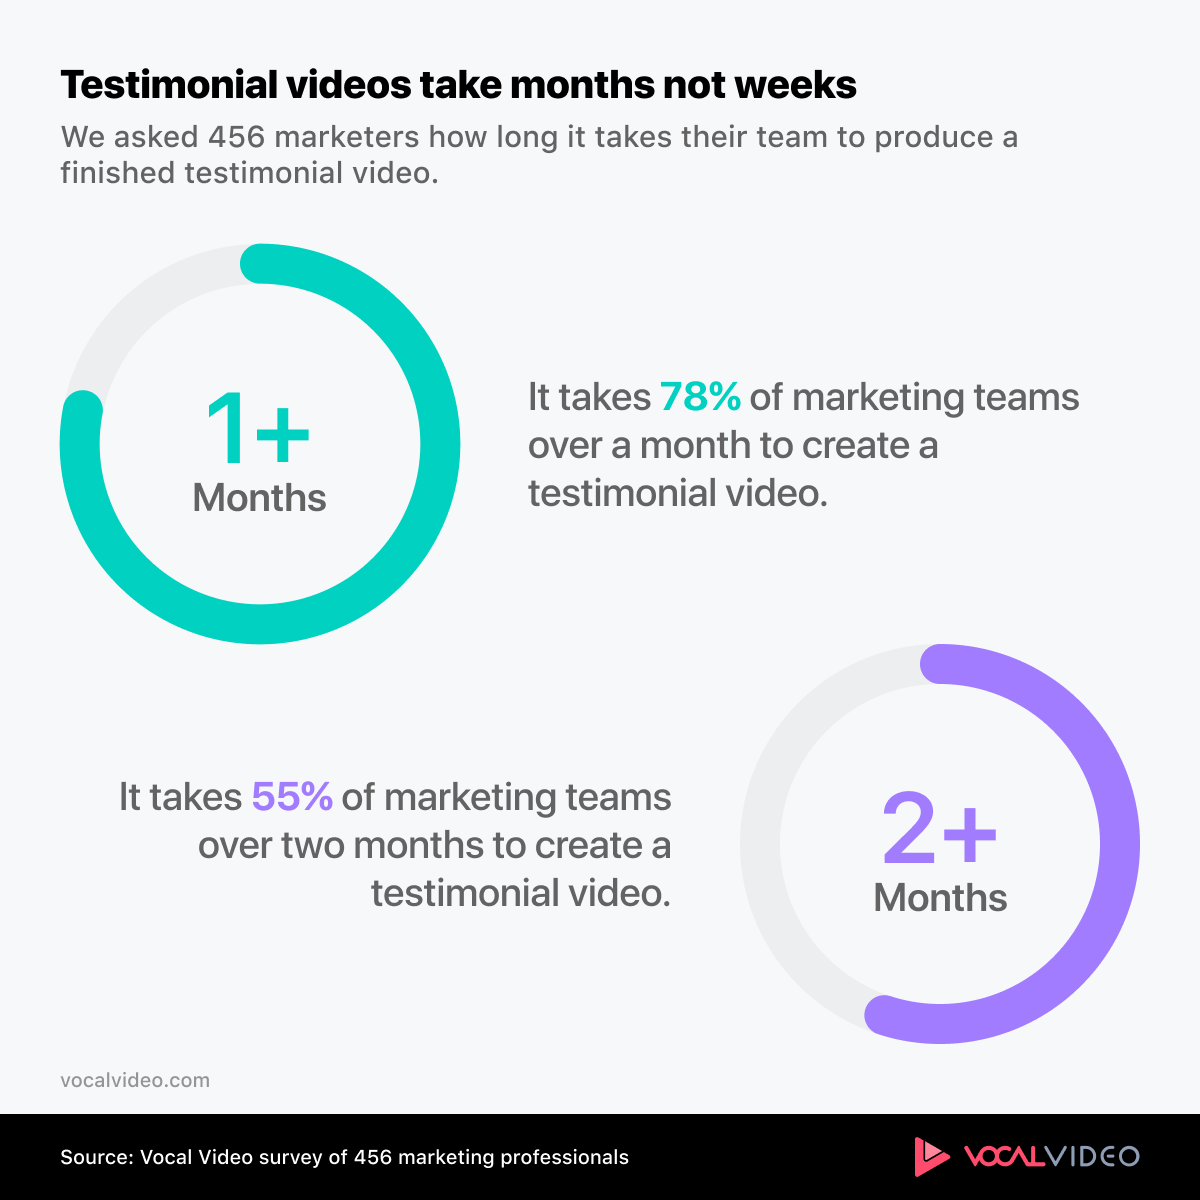 Two charts showing most marketing teams take 2+ months to create testimonial videos.